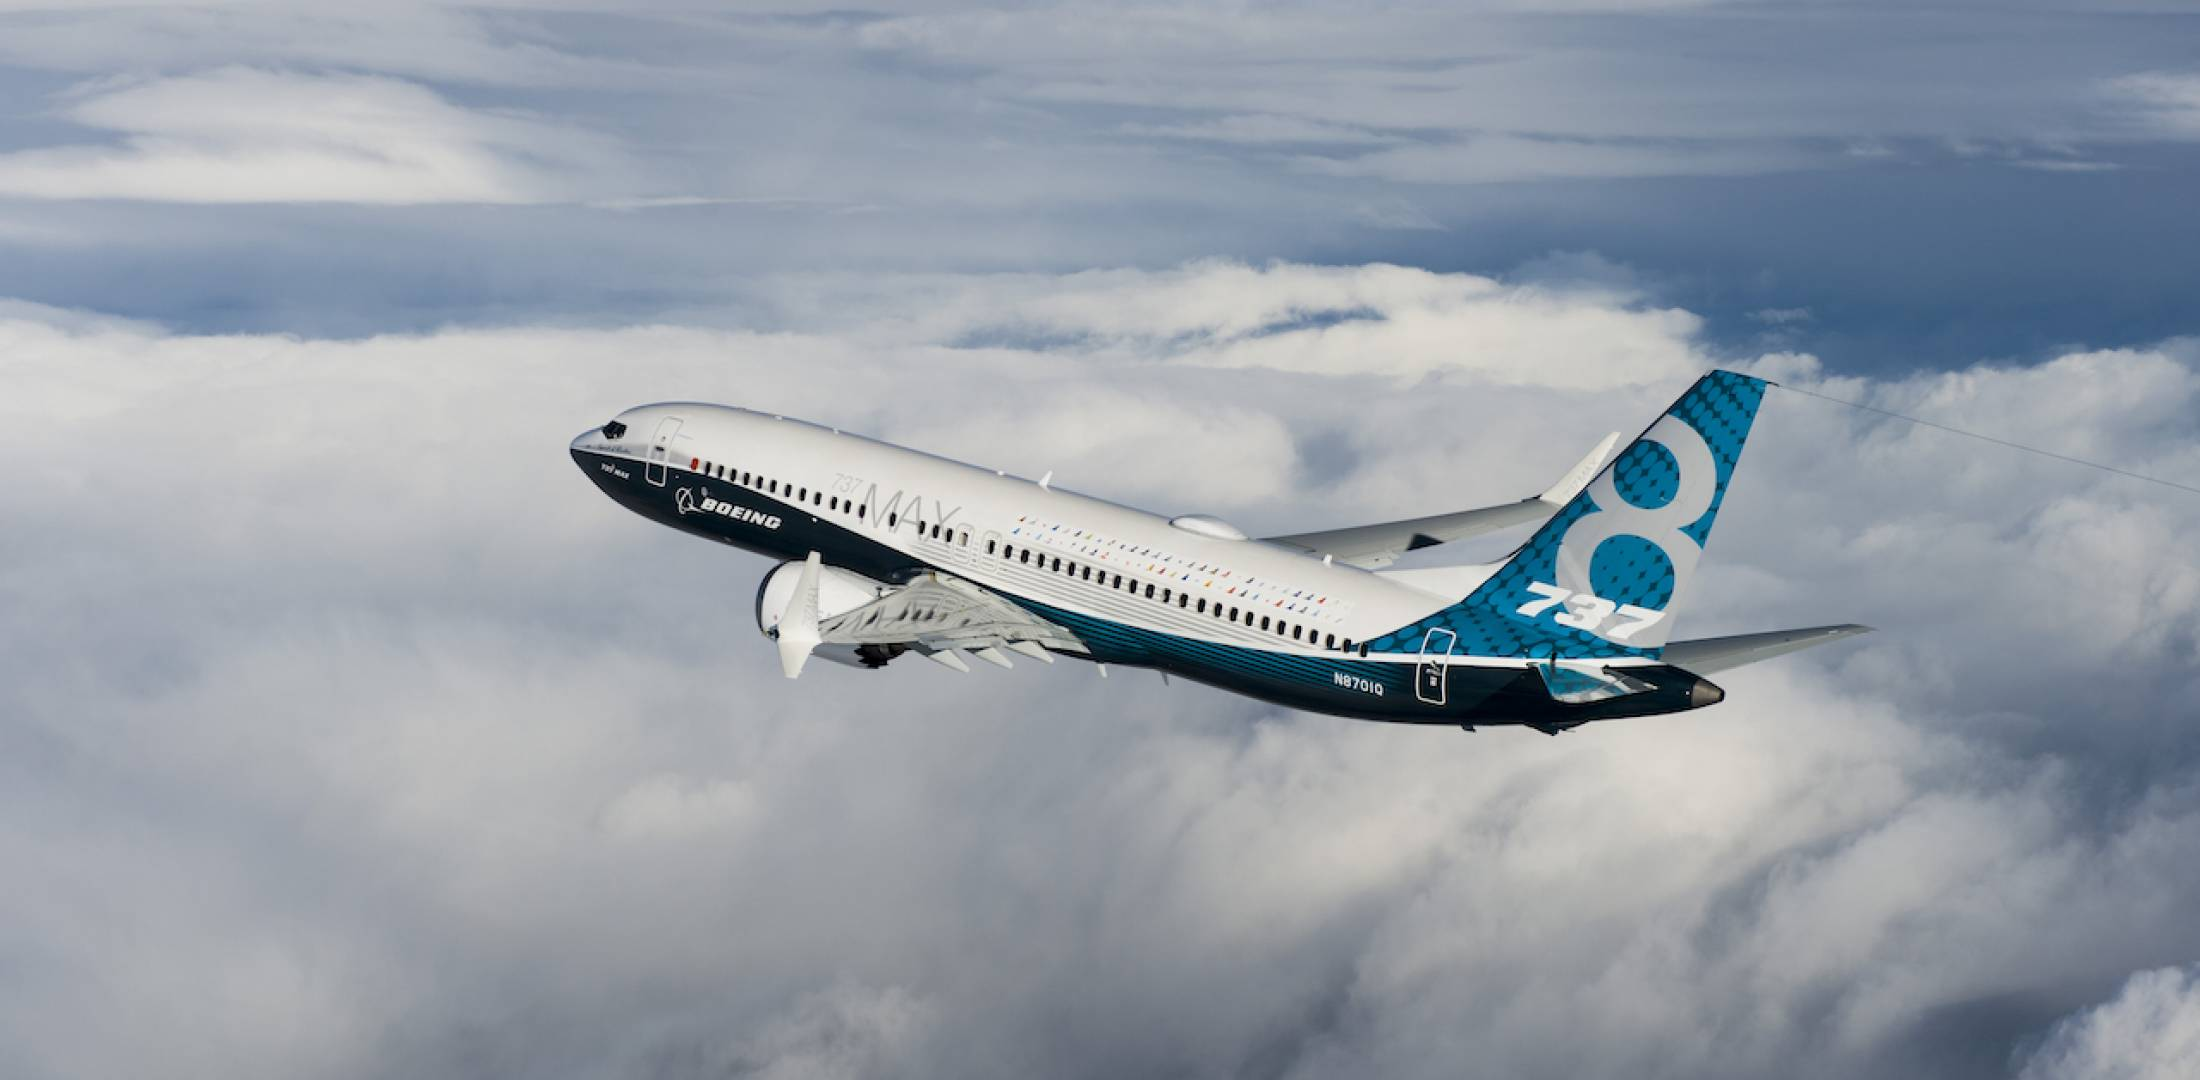 Boeing Guidance on 737 Max Stall Protection System Under Fire | Air